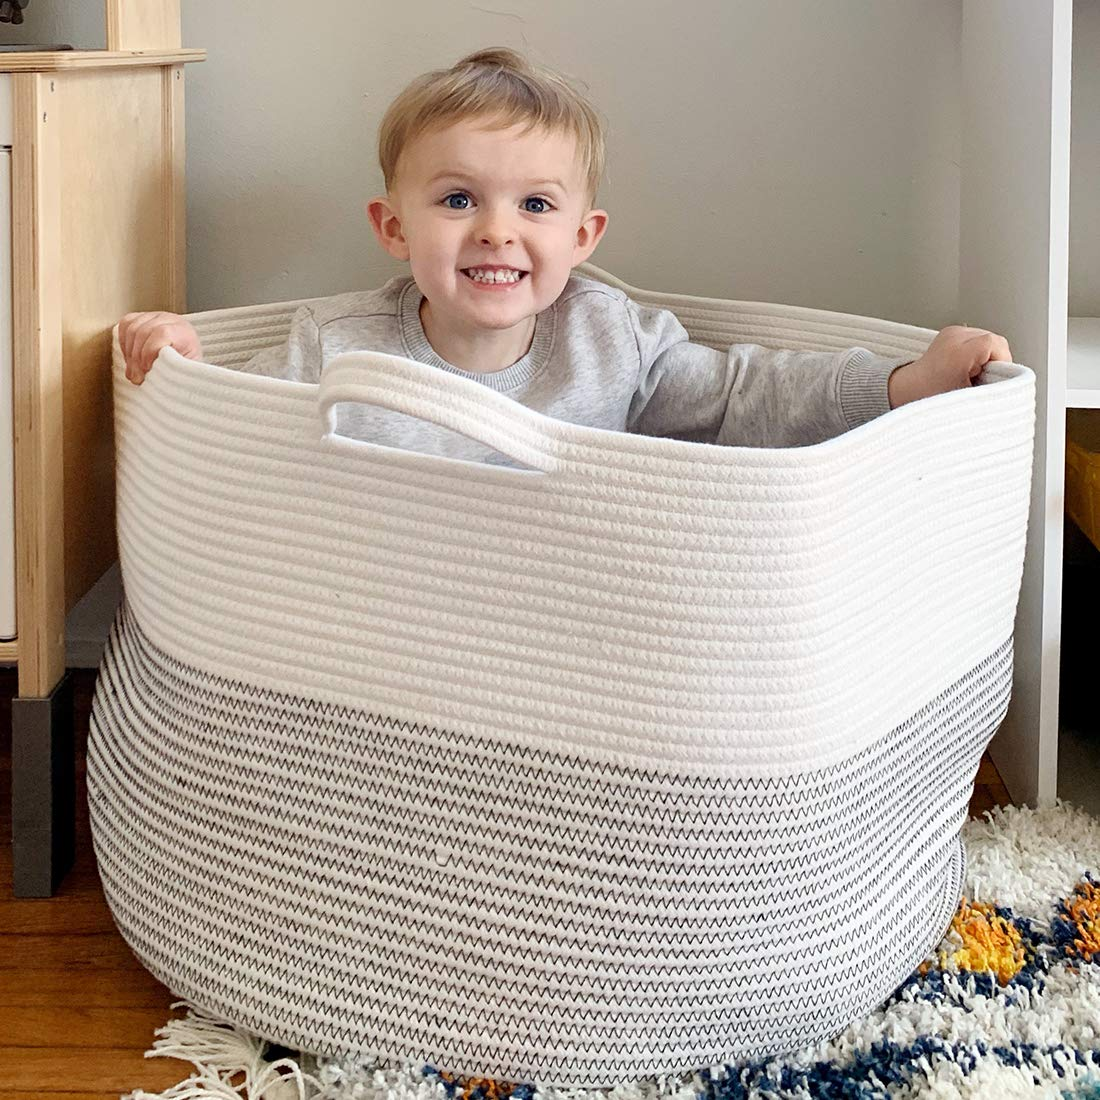 Goodpick Large Basket 23.6''D x 14.2''H | Jumbo Woven Basket | Cotton Rope Basket | Baby Laundry Basket Hamper with Handles for Comforter, Cushions, Quilt, Toy Bins, Brown Stitch